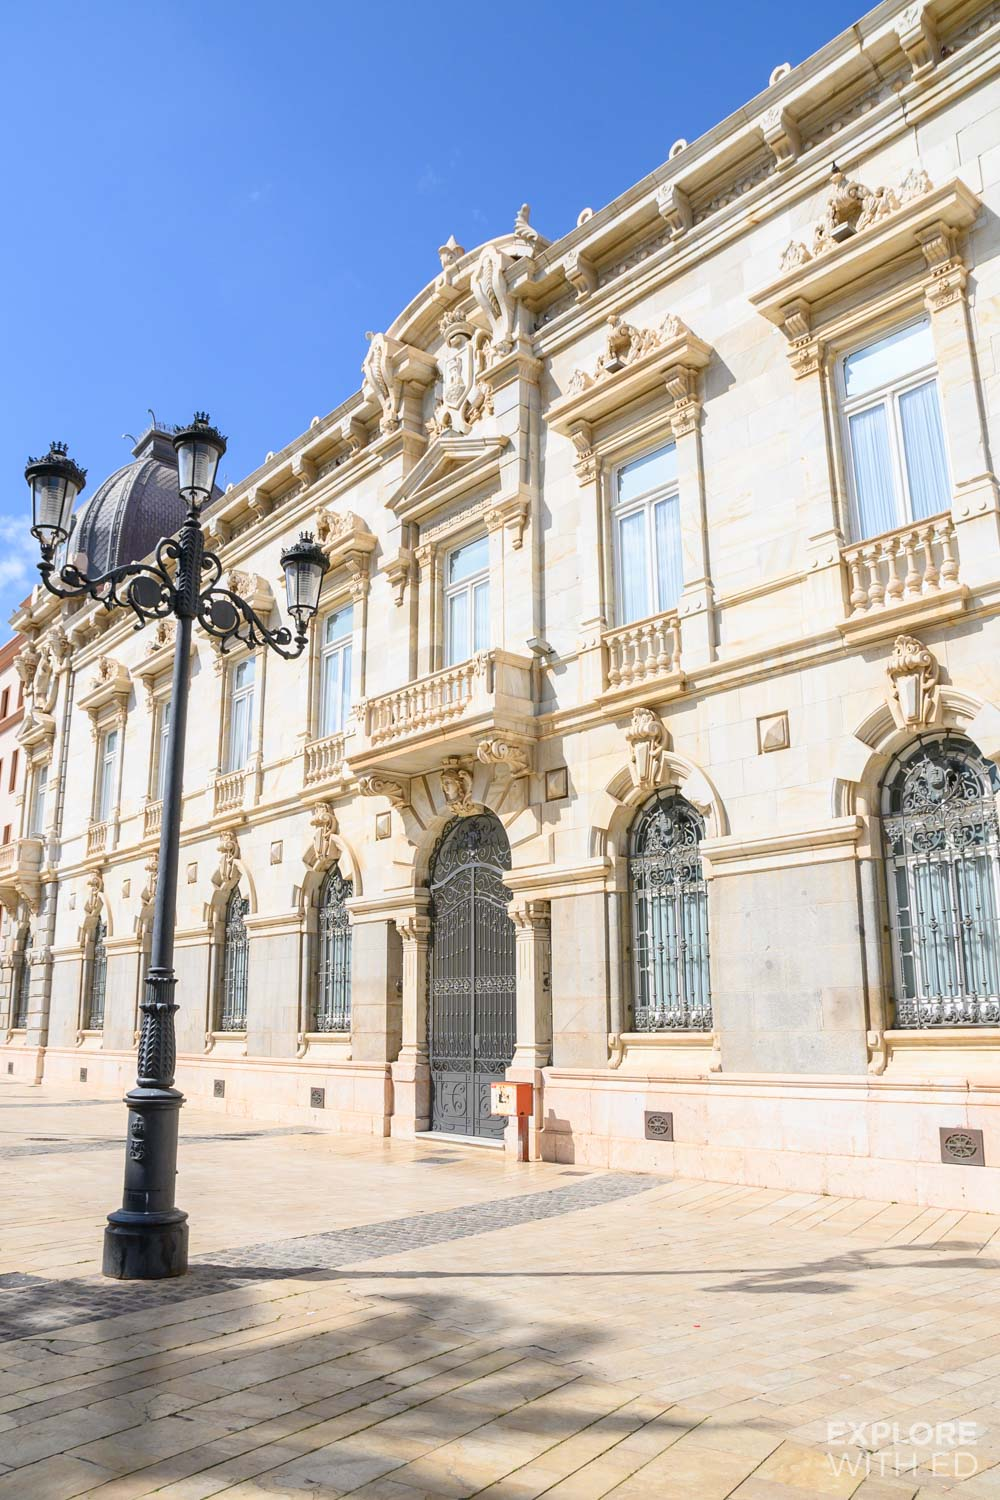 Beautiful stone buildings in Cartagena, Spain